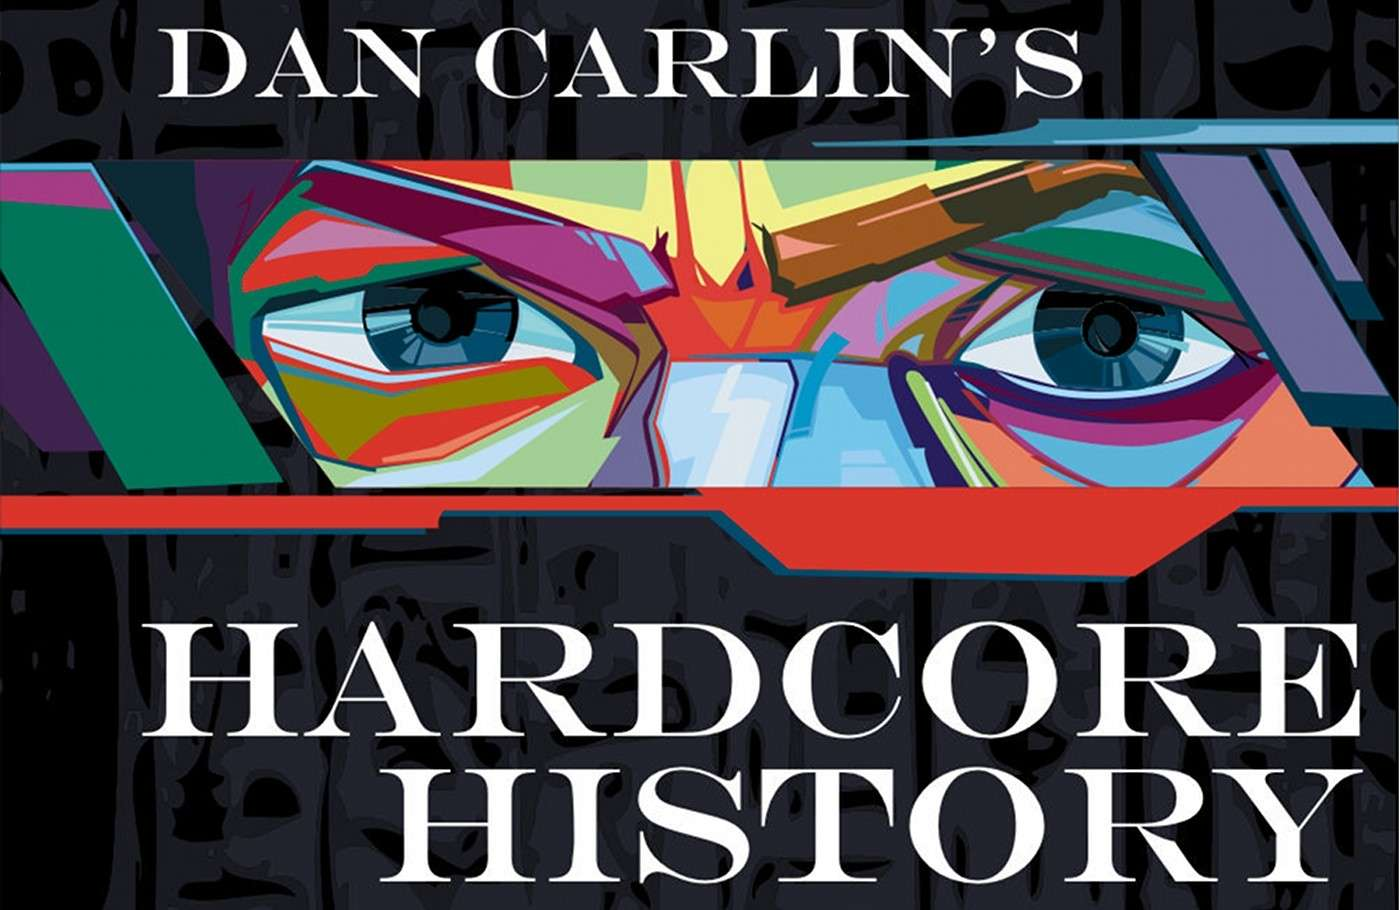 Hardcore History by Dan Carlin - Best Podcasts on History